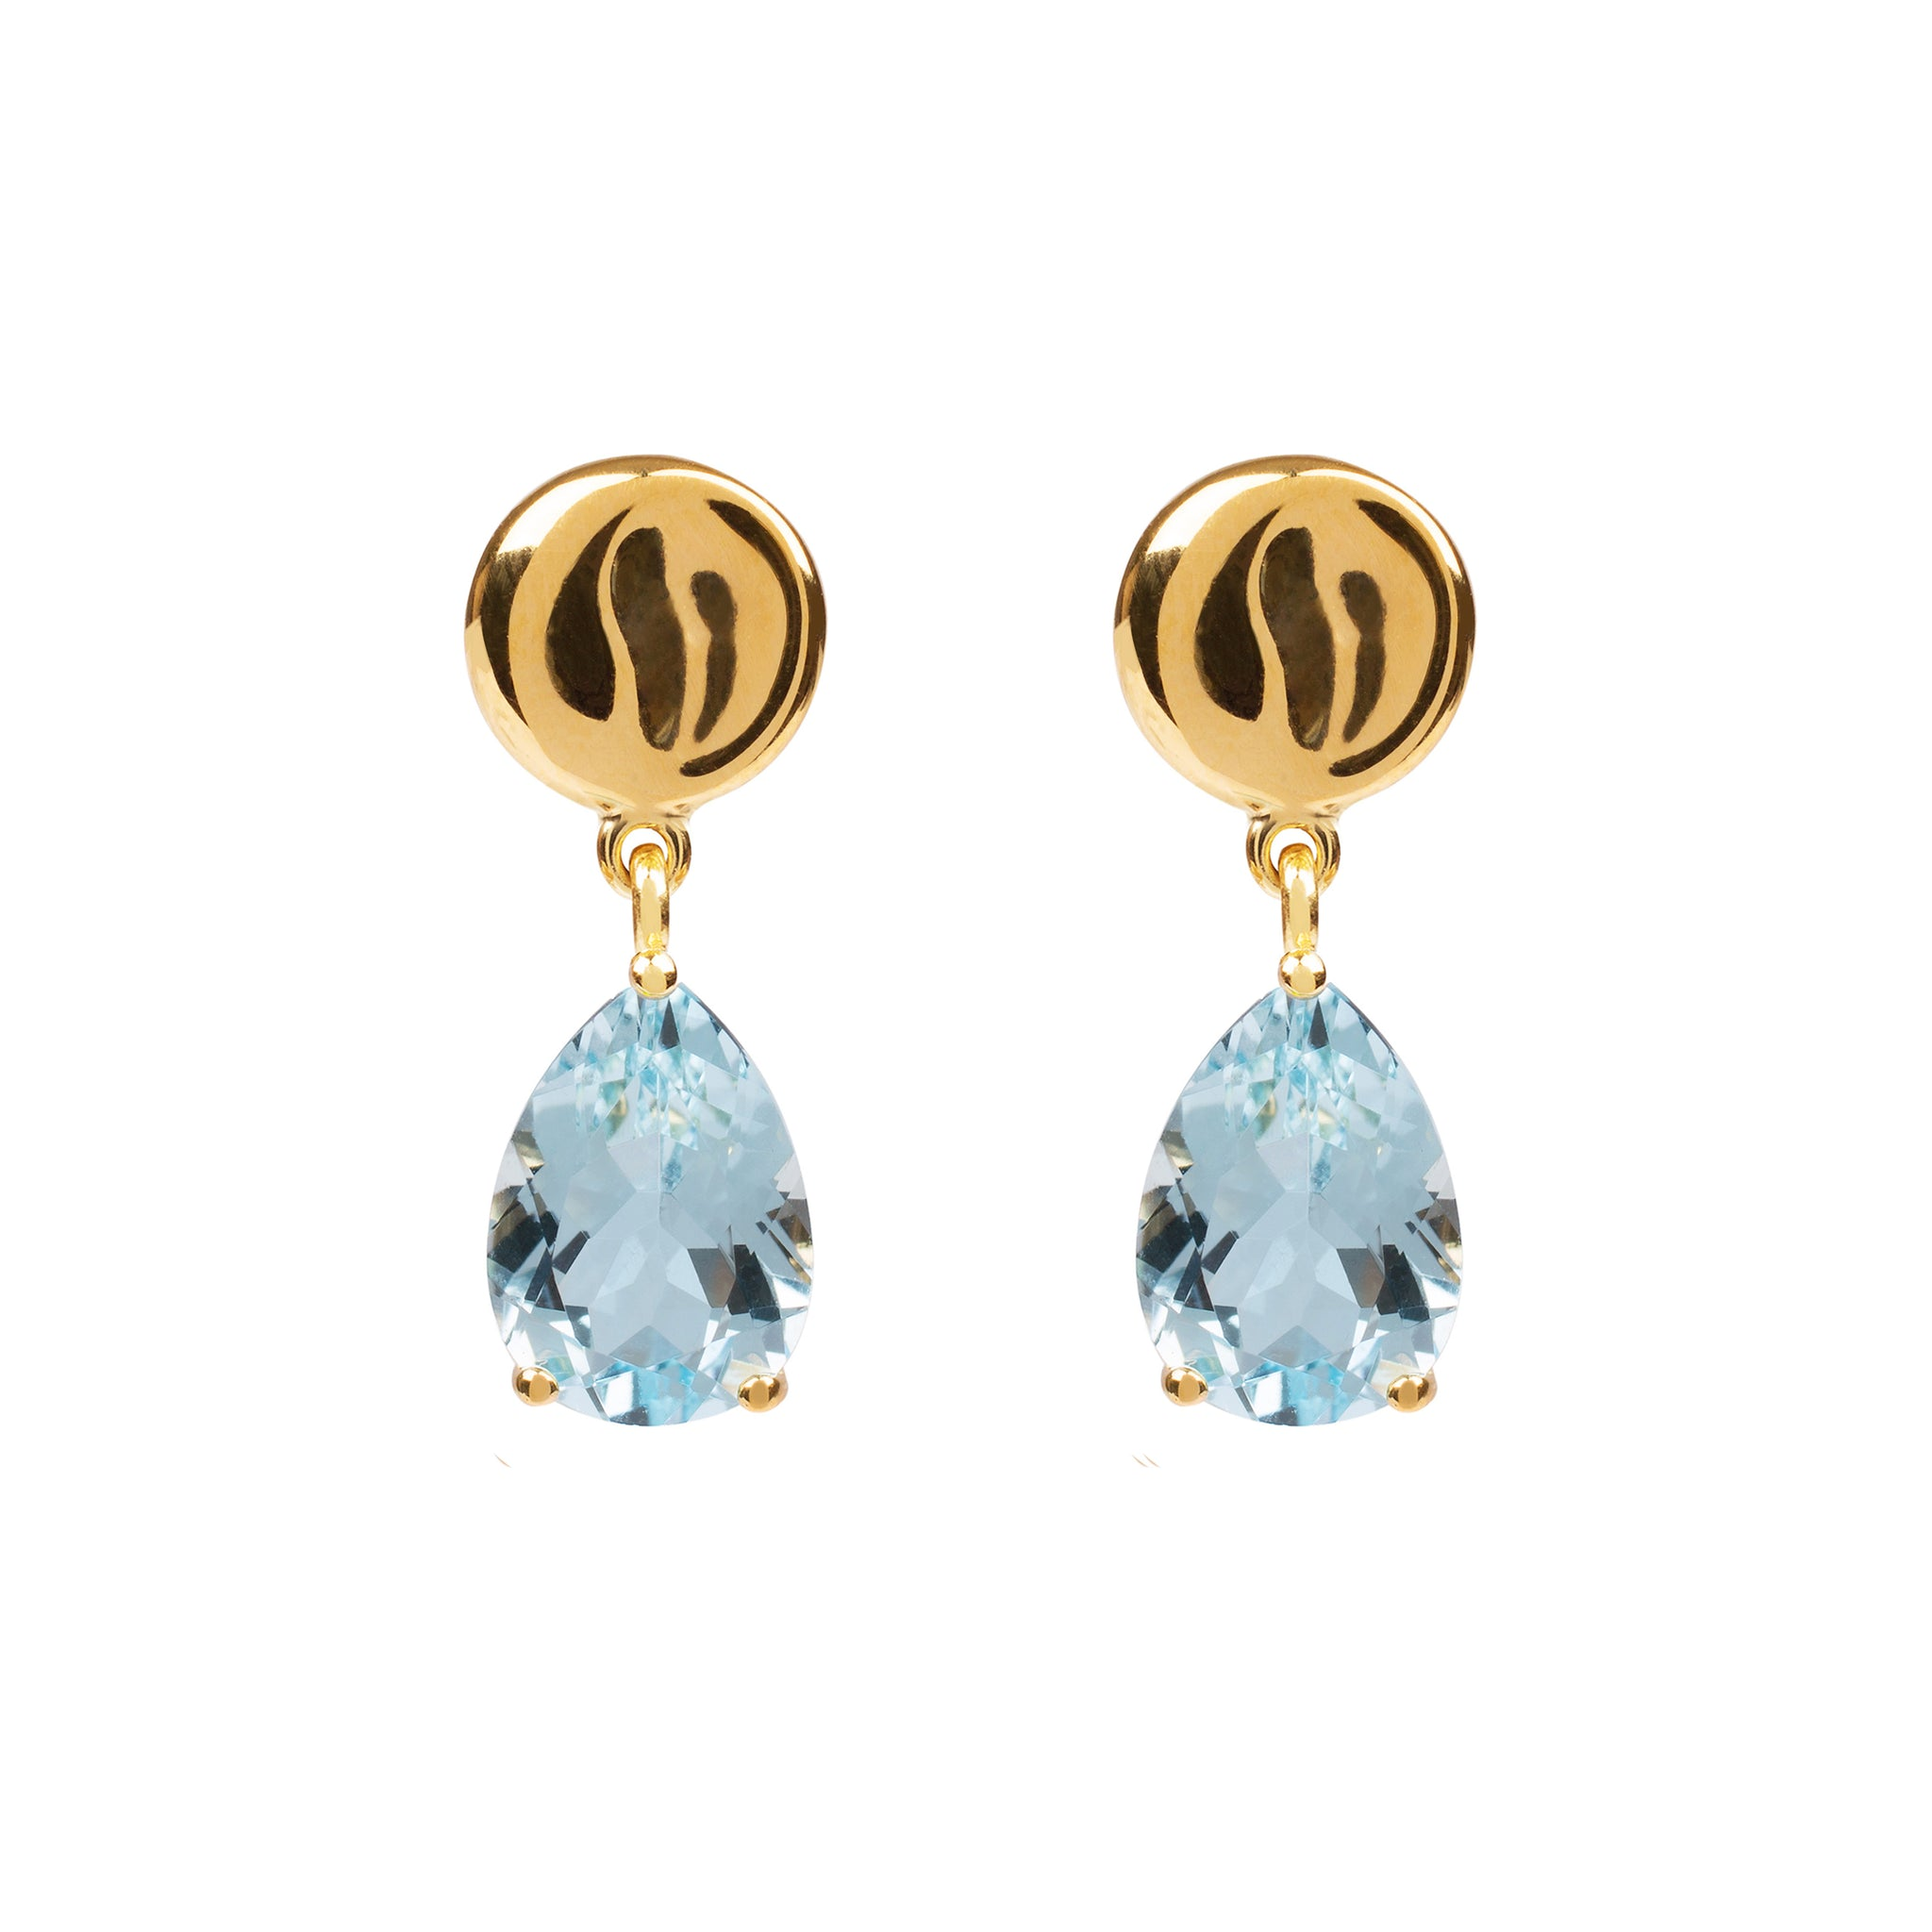 DAVINA COMBE - DROP EARRINGS WITH BLUE TOPAZ